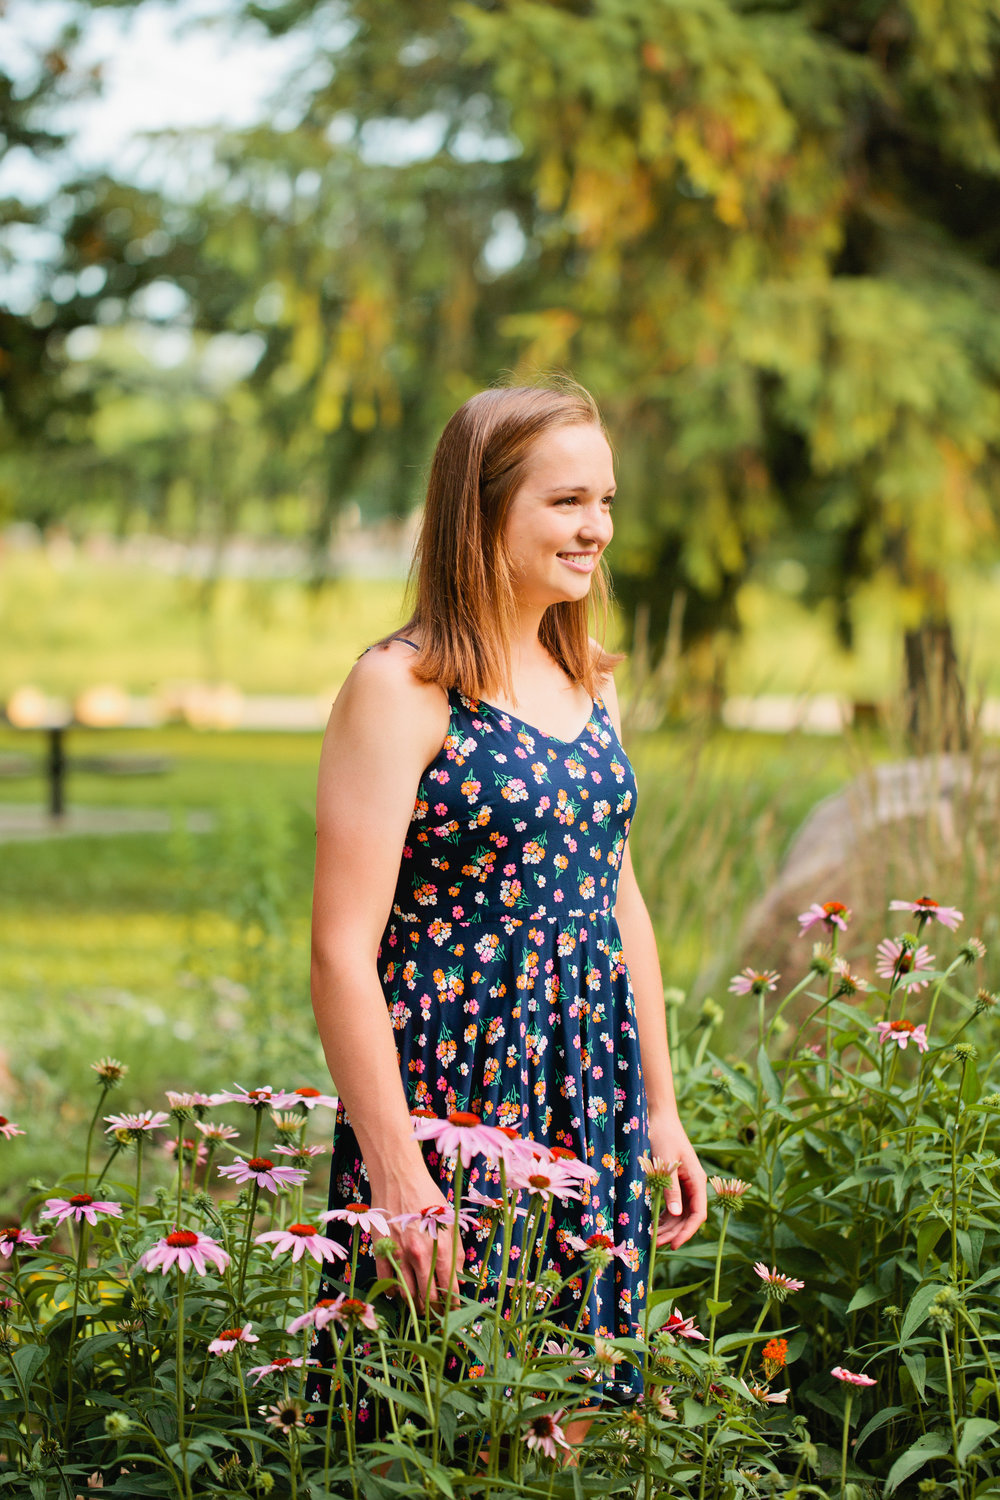 Des Moines high school senior photography with flowers